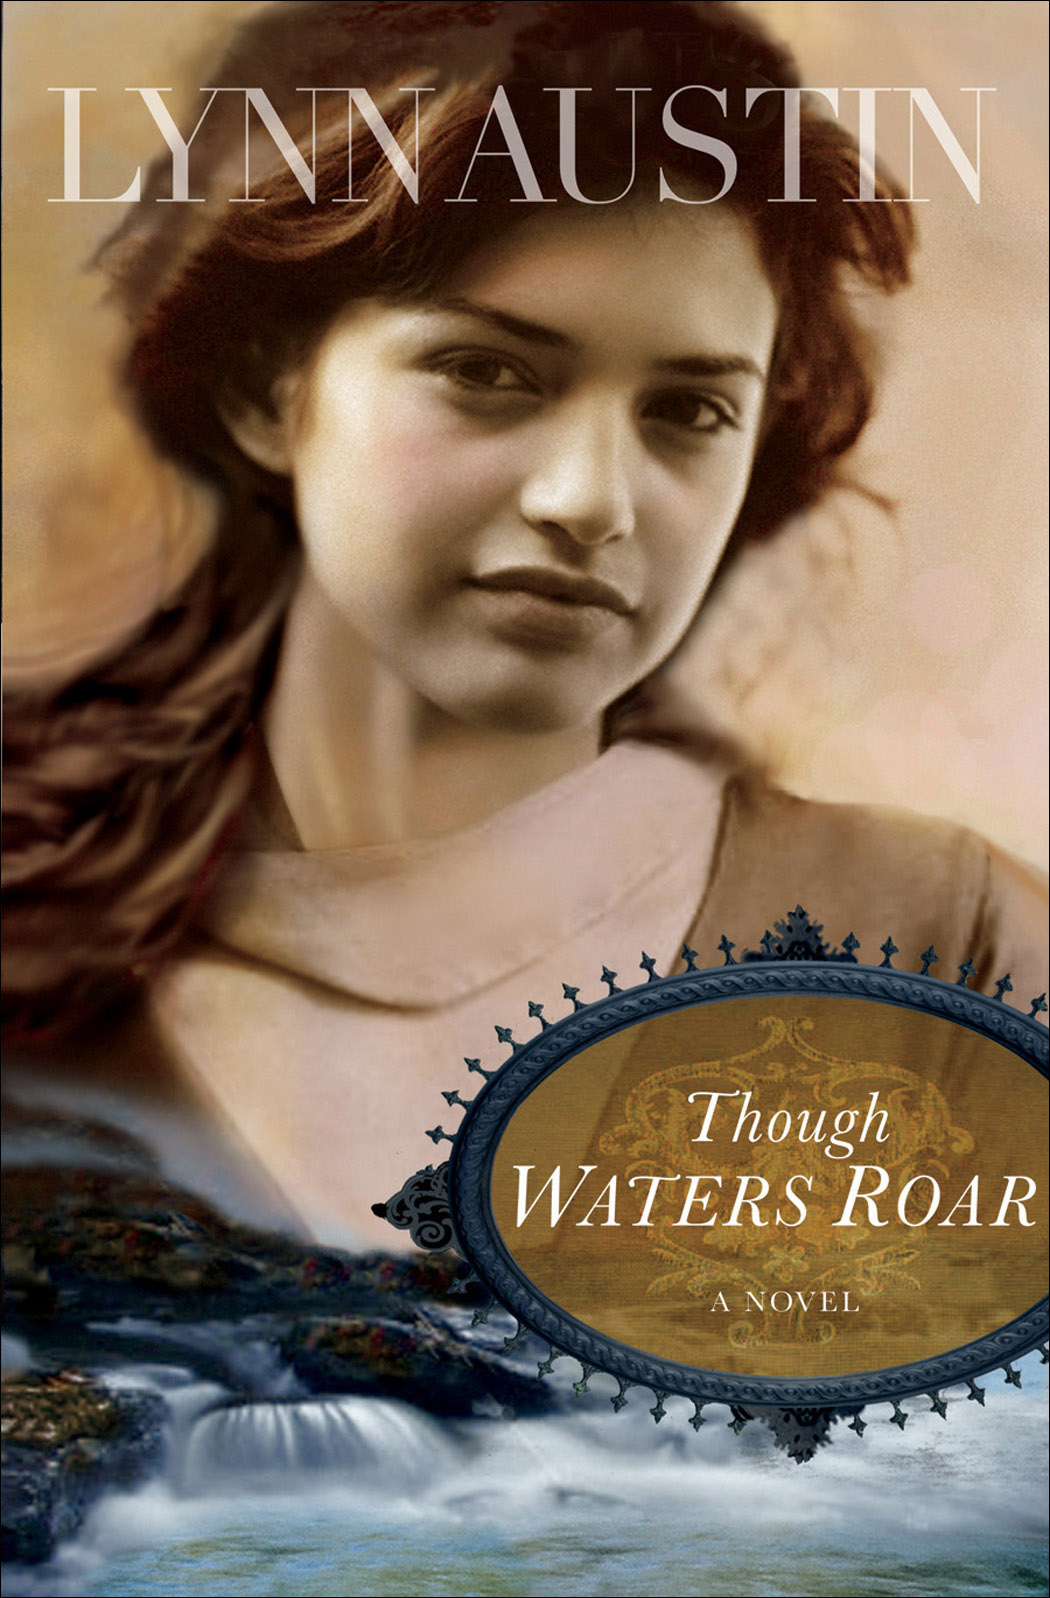 Book Cover: Though Waters Roar